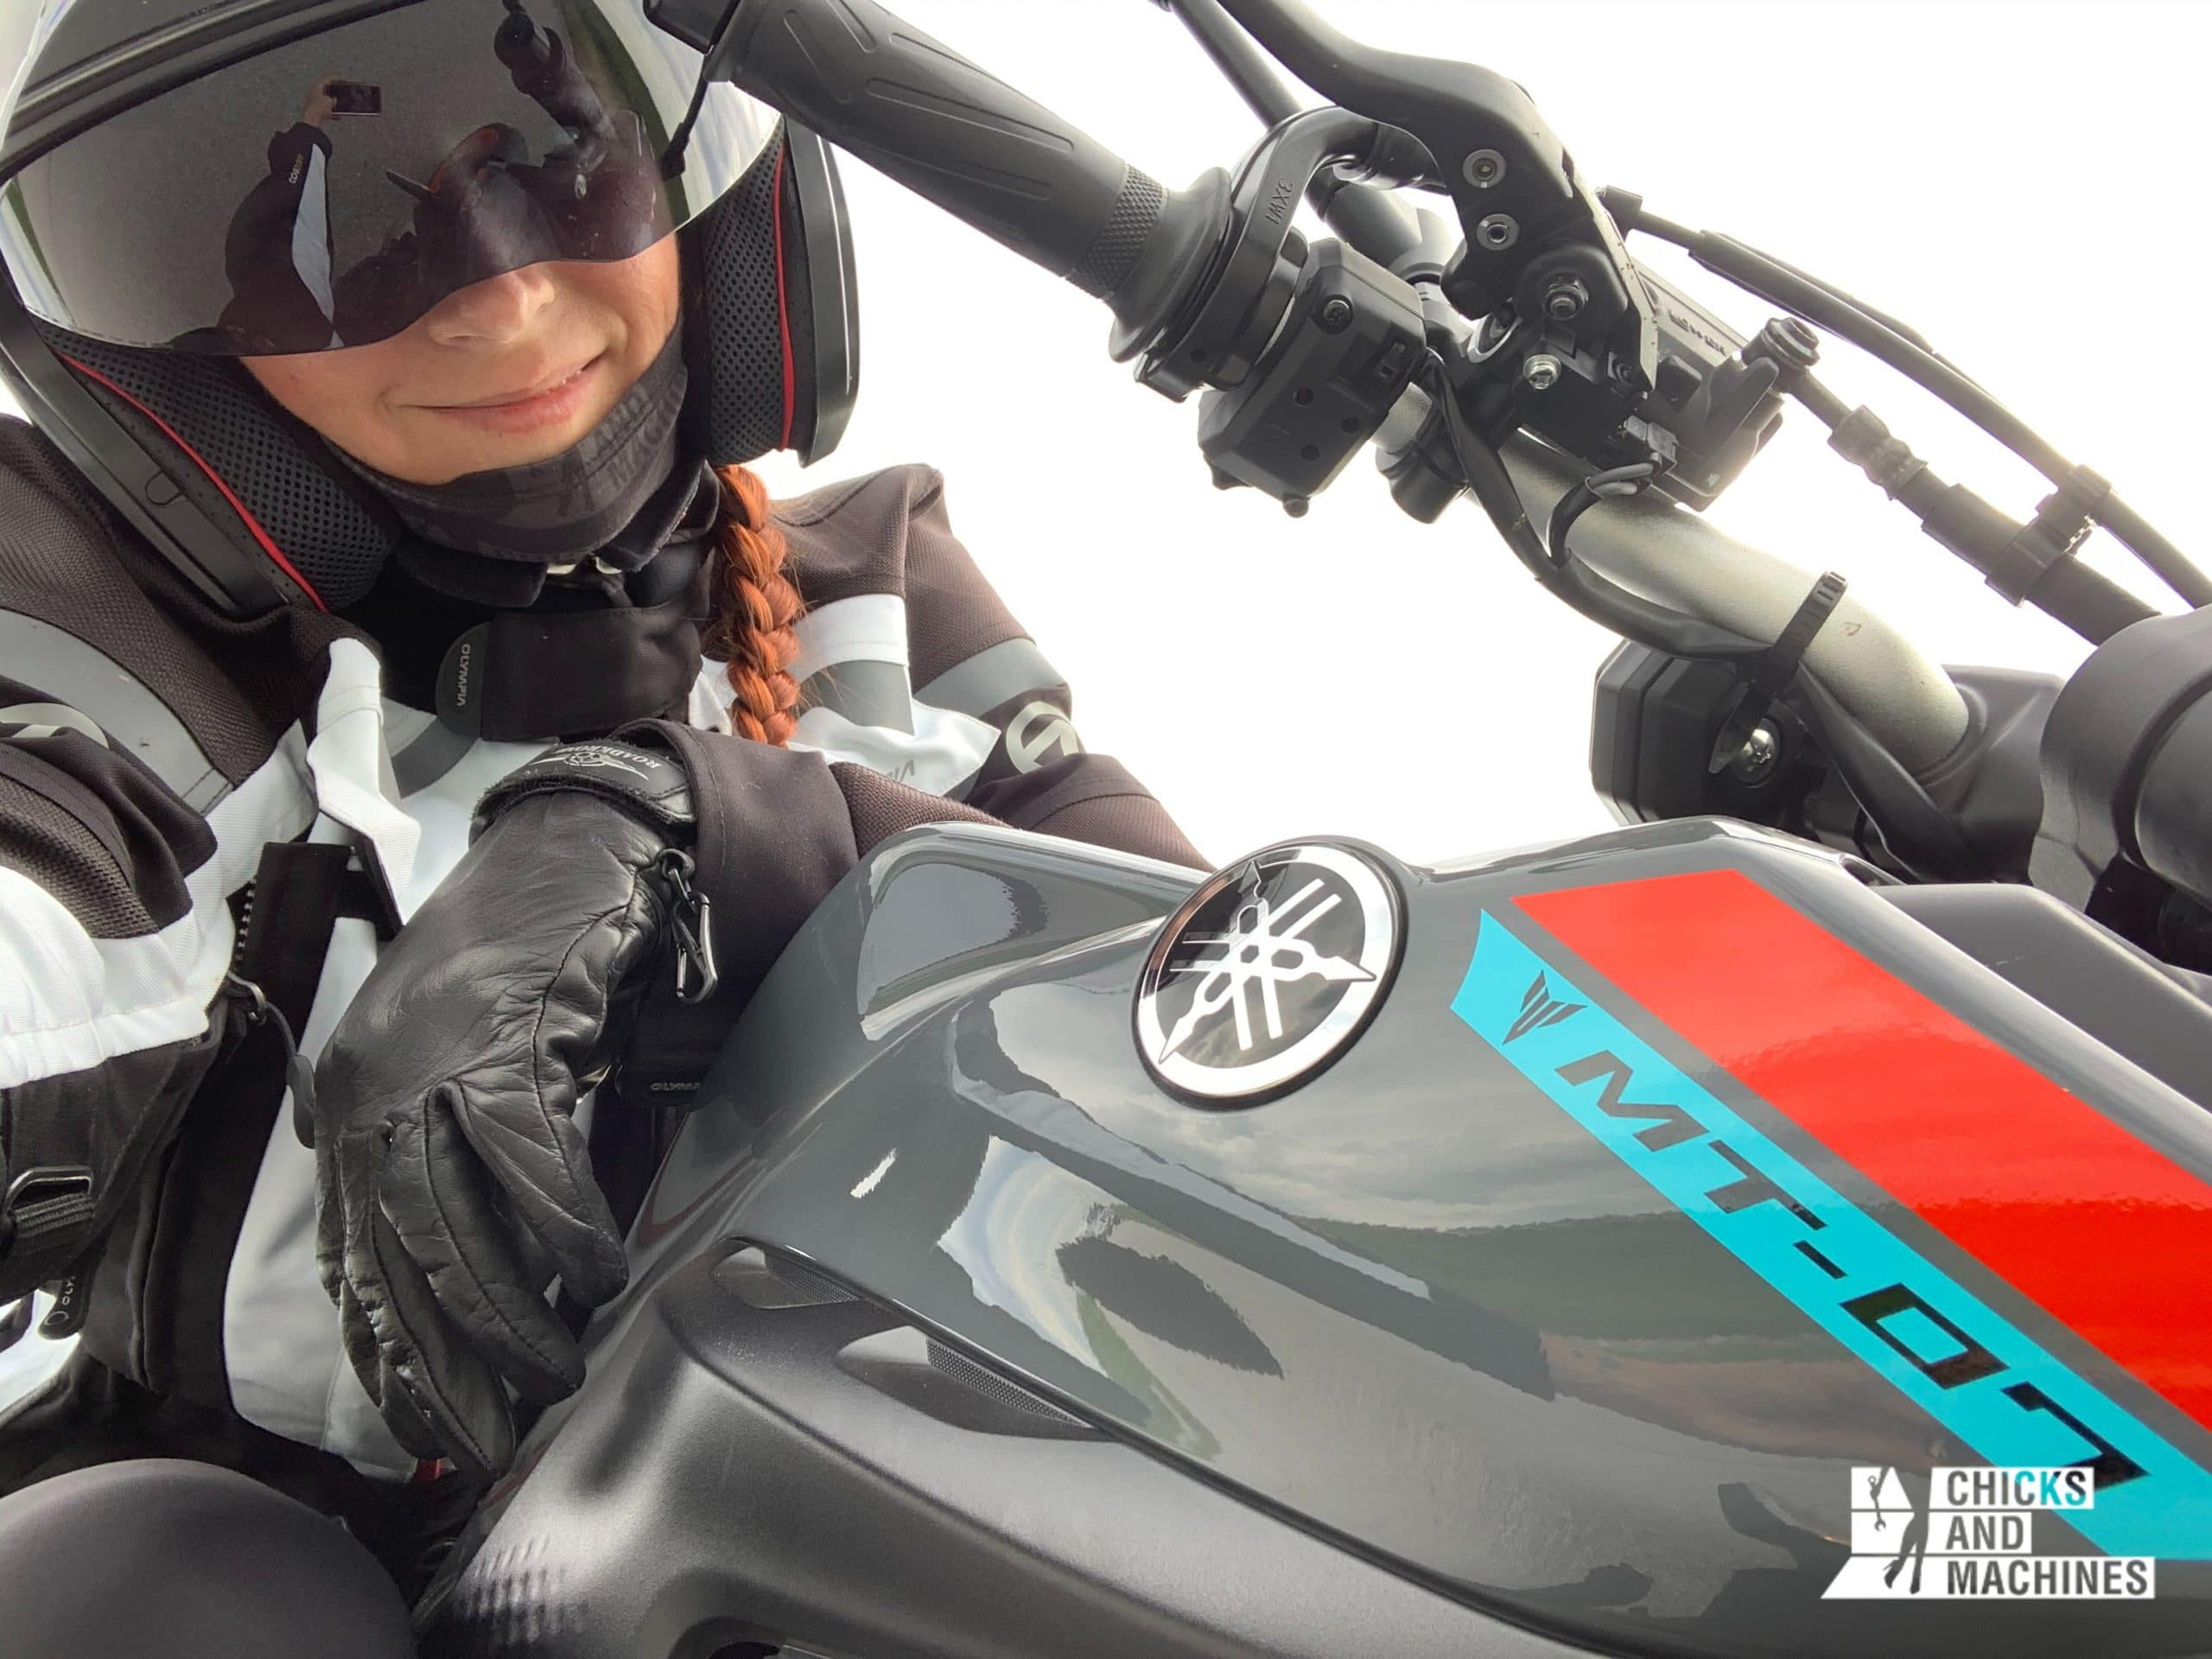 Caro while her road test with the 2021 Yamaha MT-07